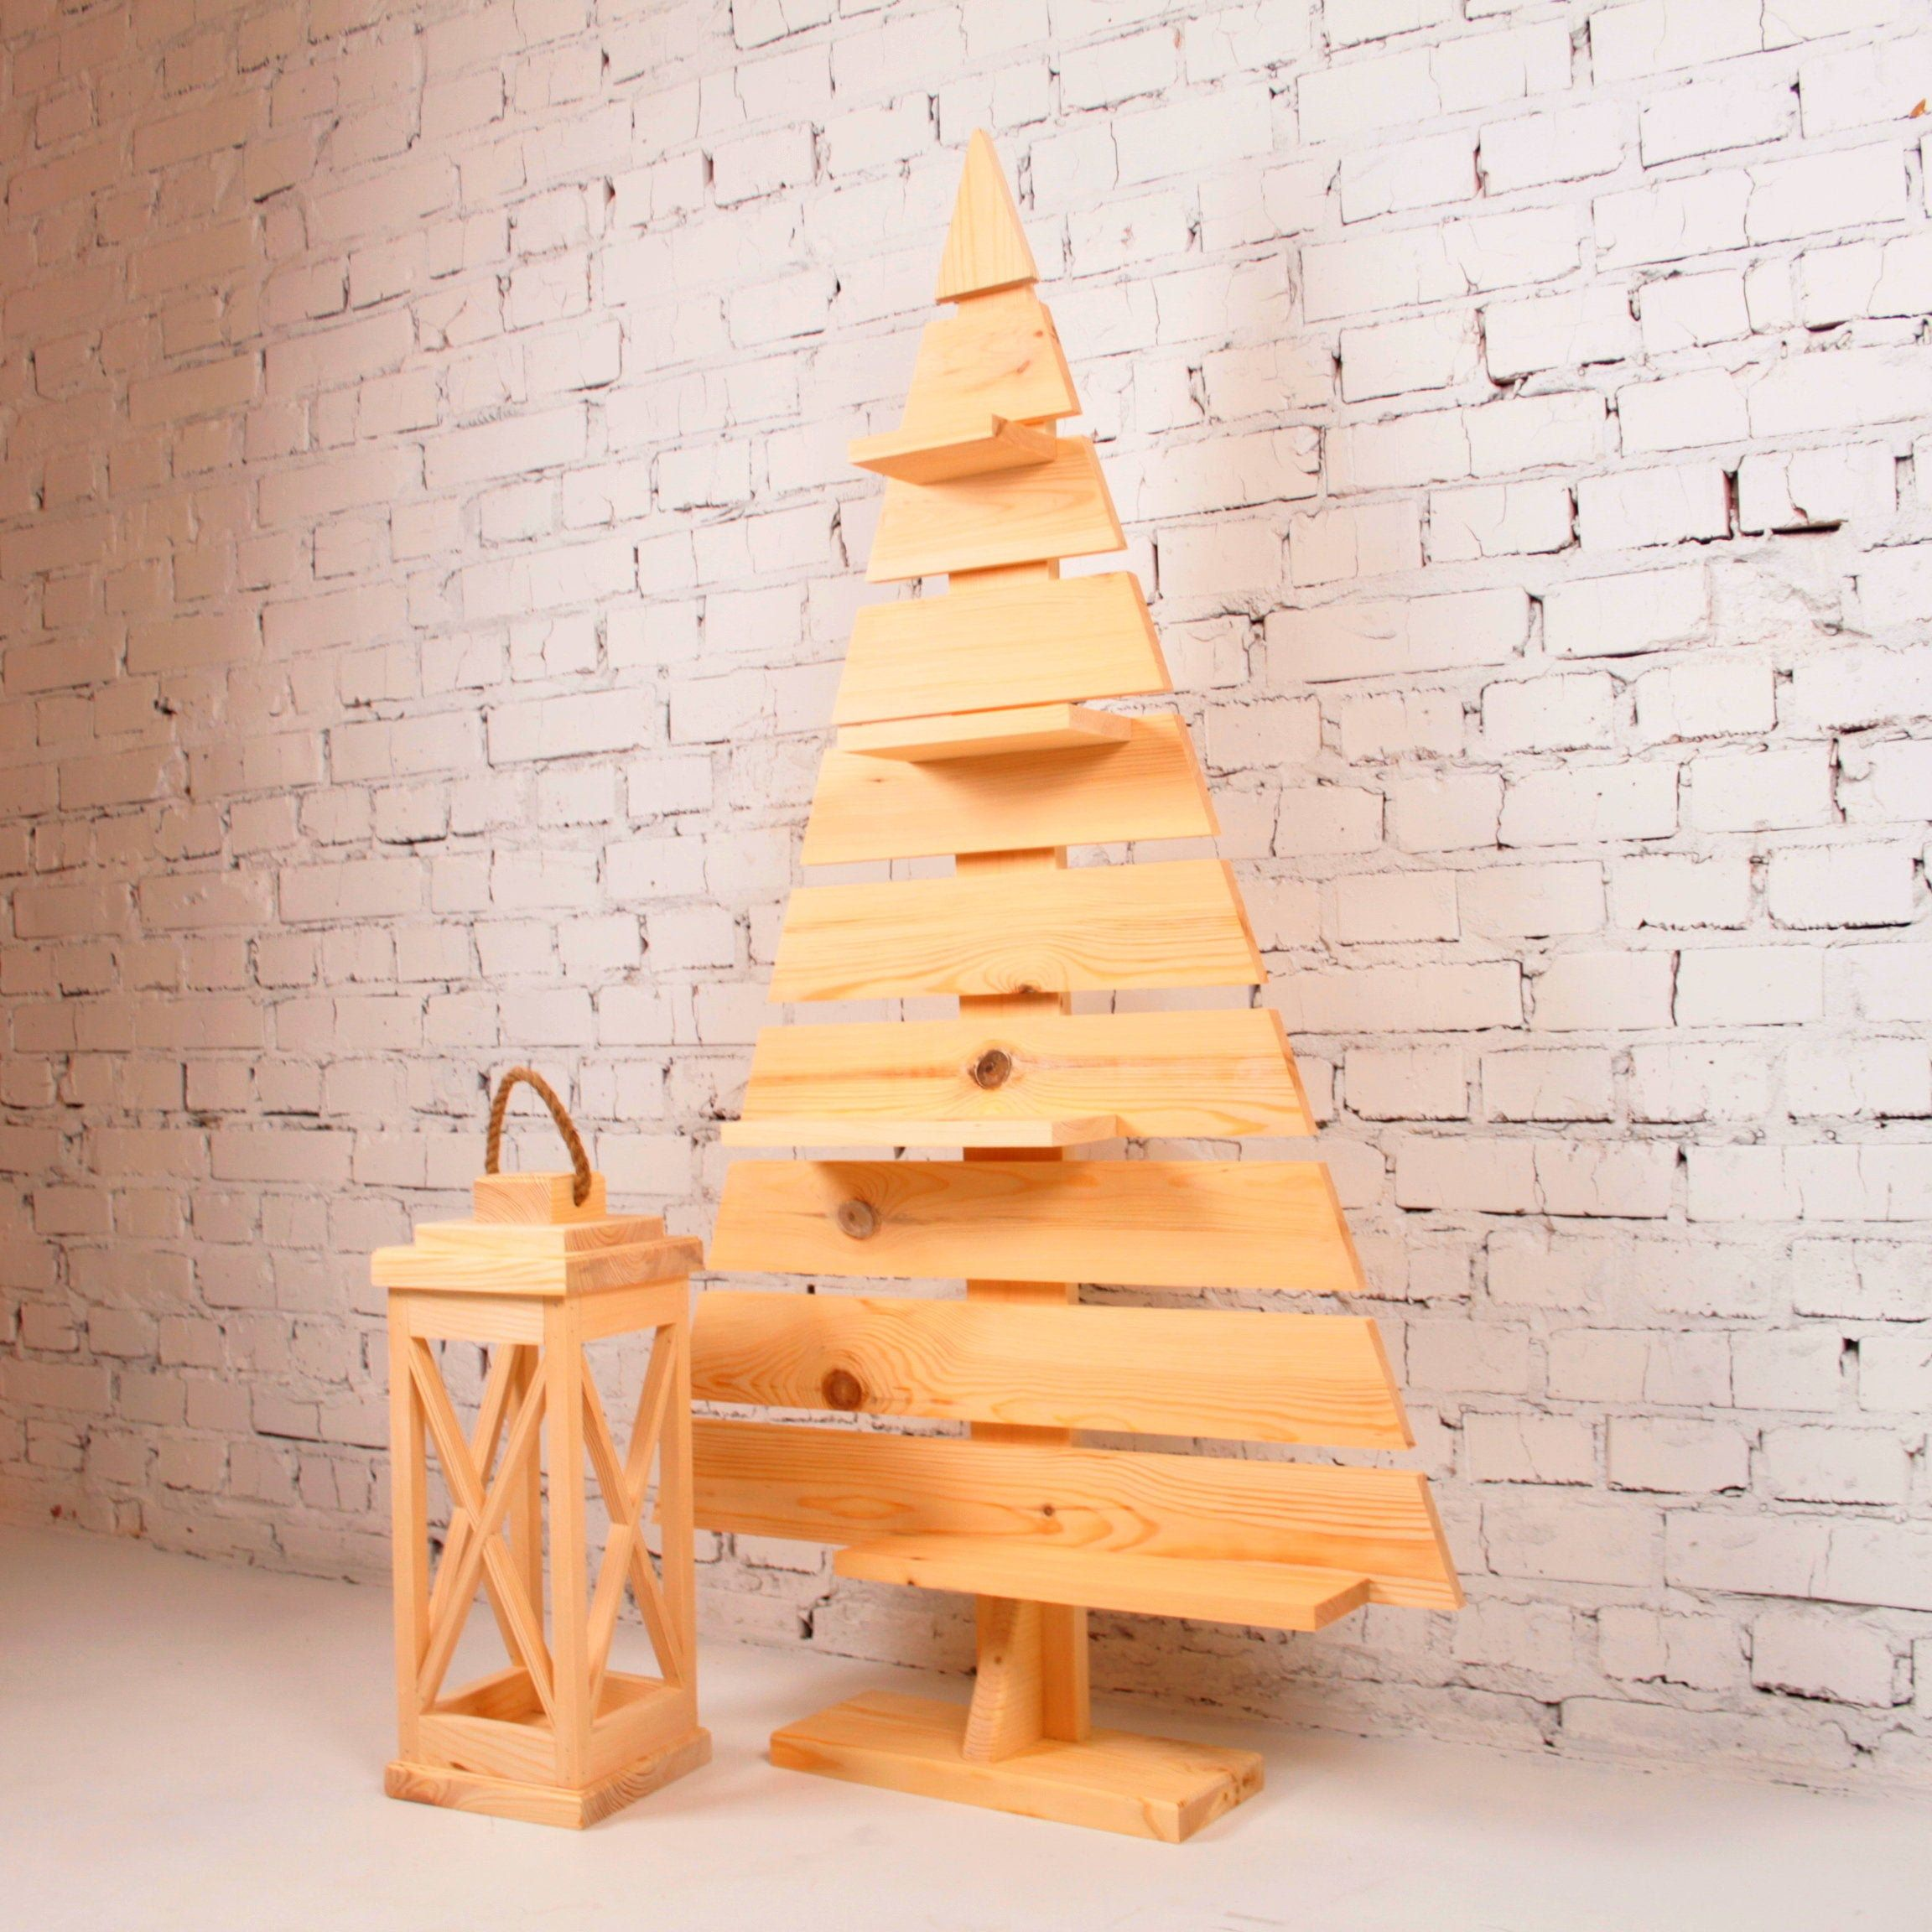 Christmas Tree Prices 2020 Farmhouse Style Wood Christmas Ornaments. Christmas tree   Etsy in